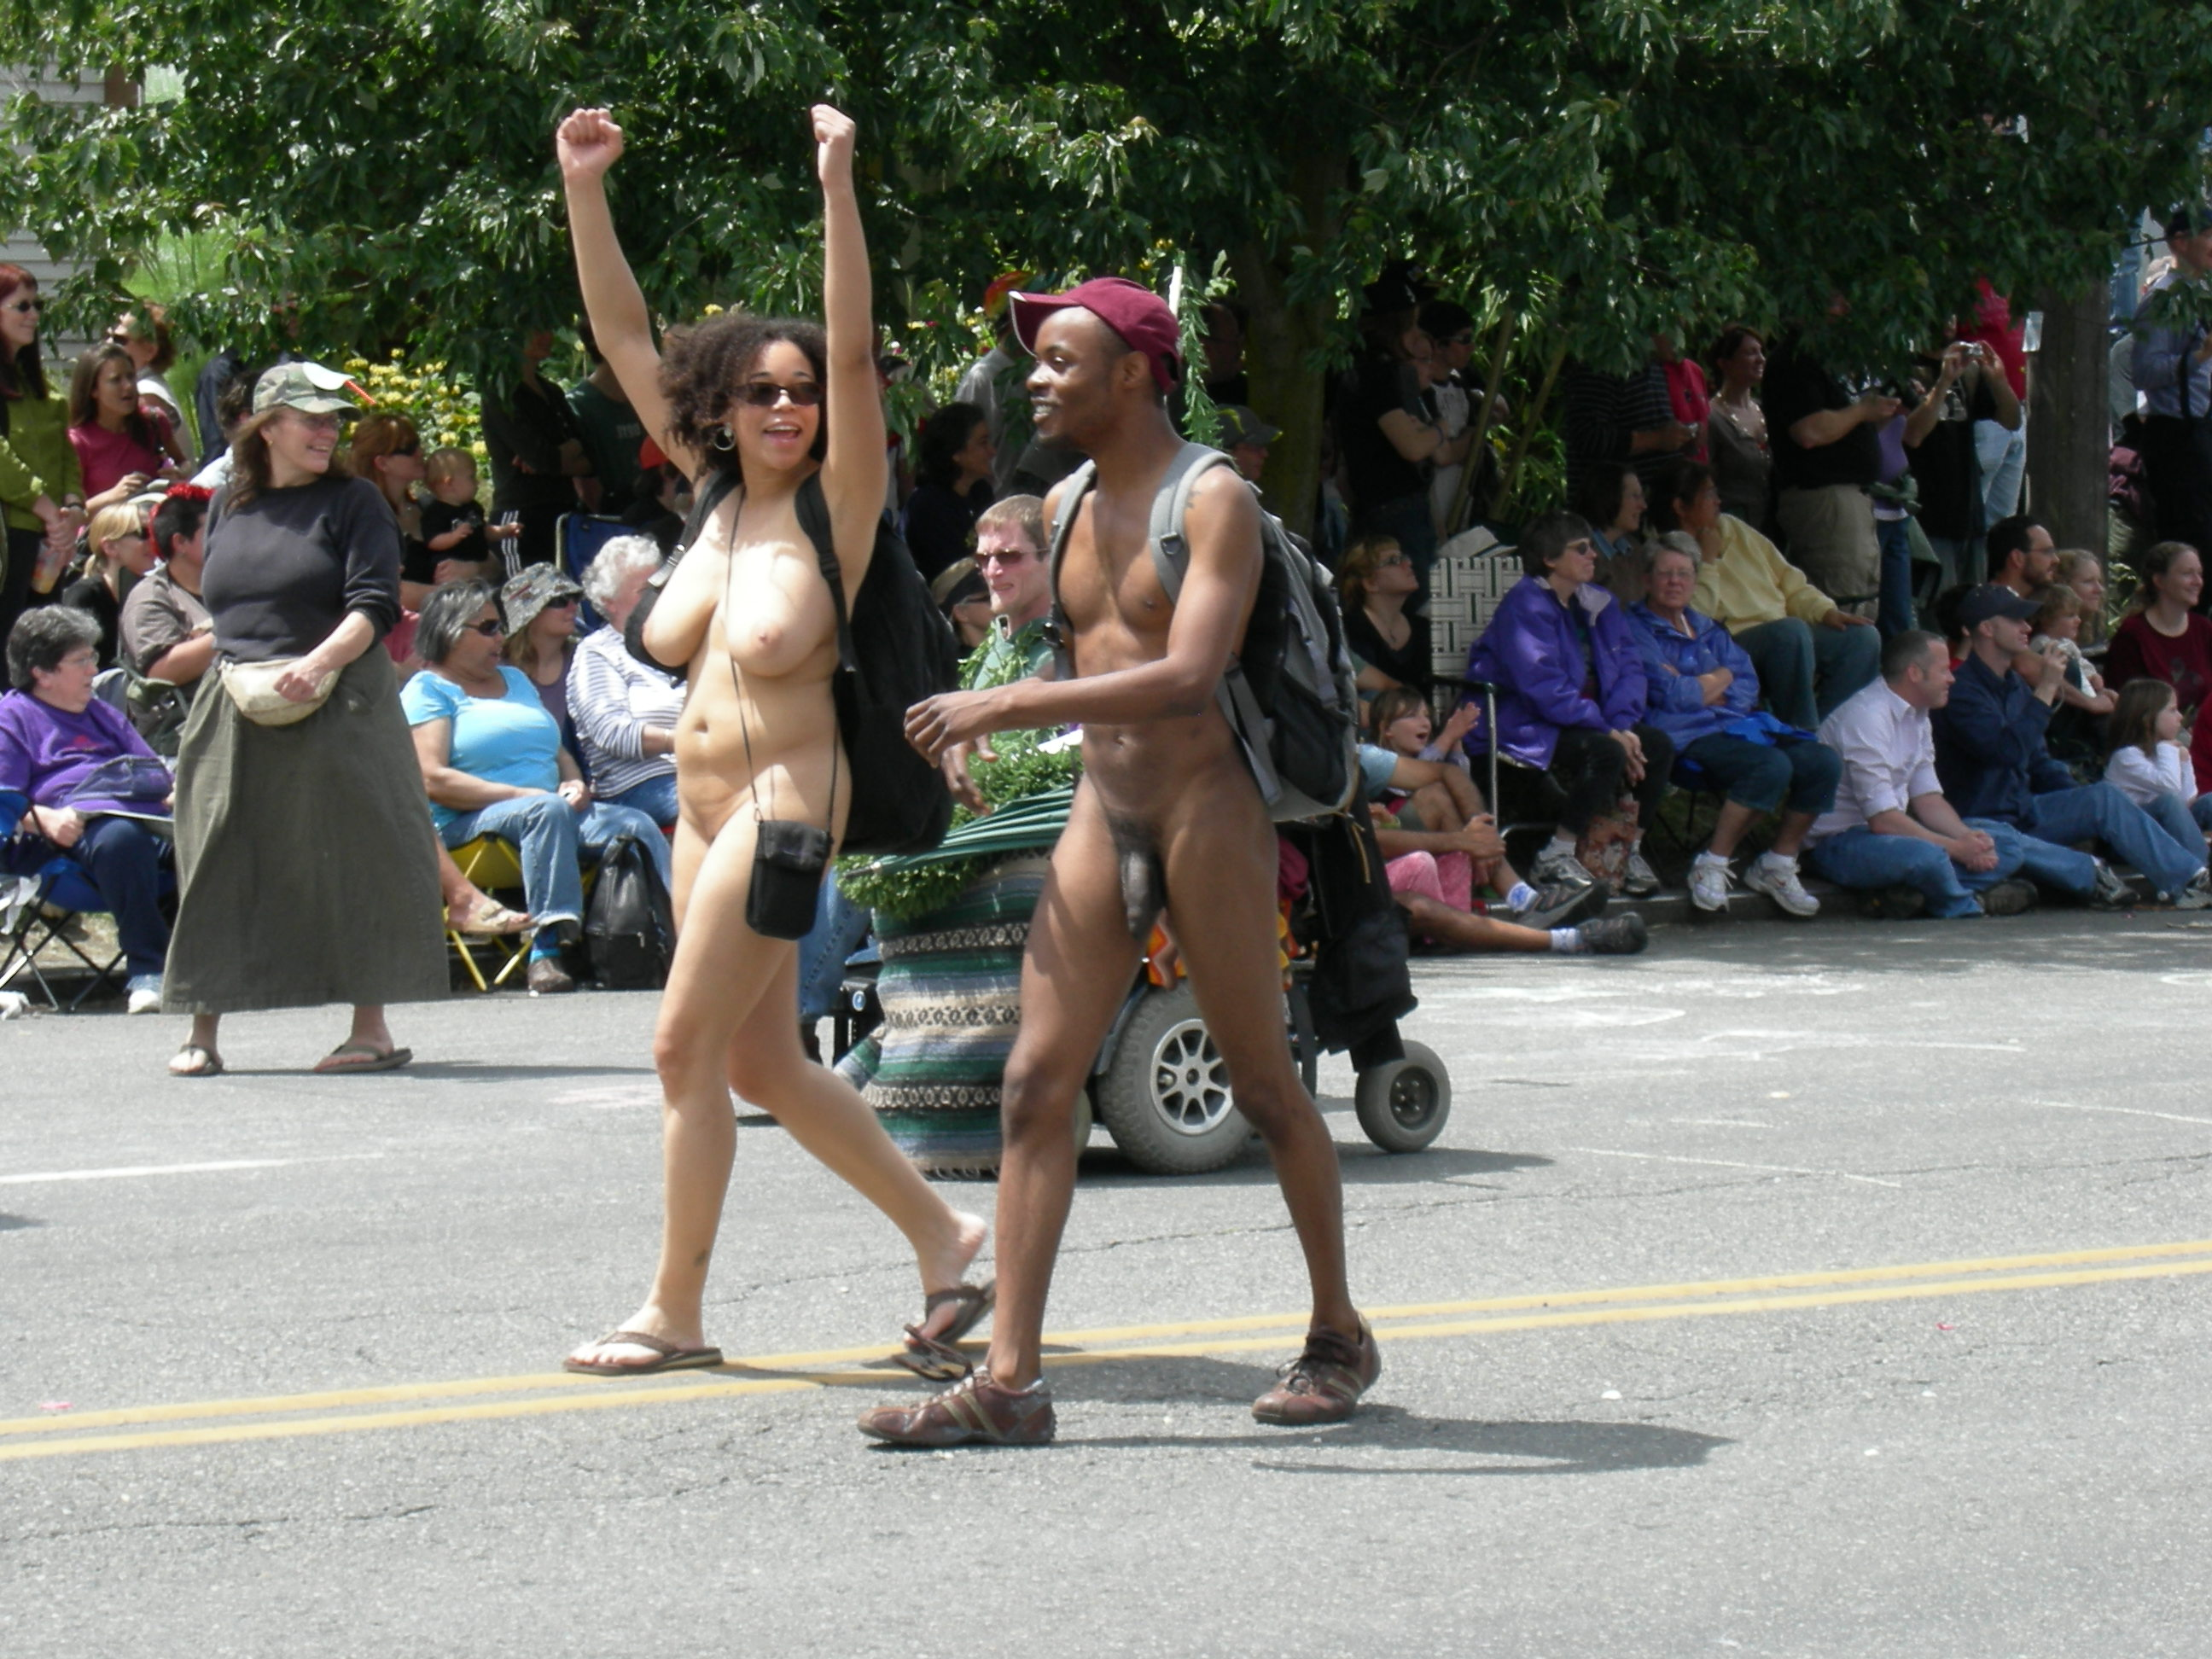 Remarkable, useful nudists parade porno pics congratulate, what